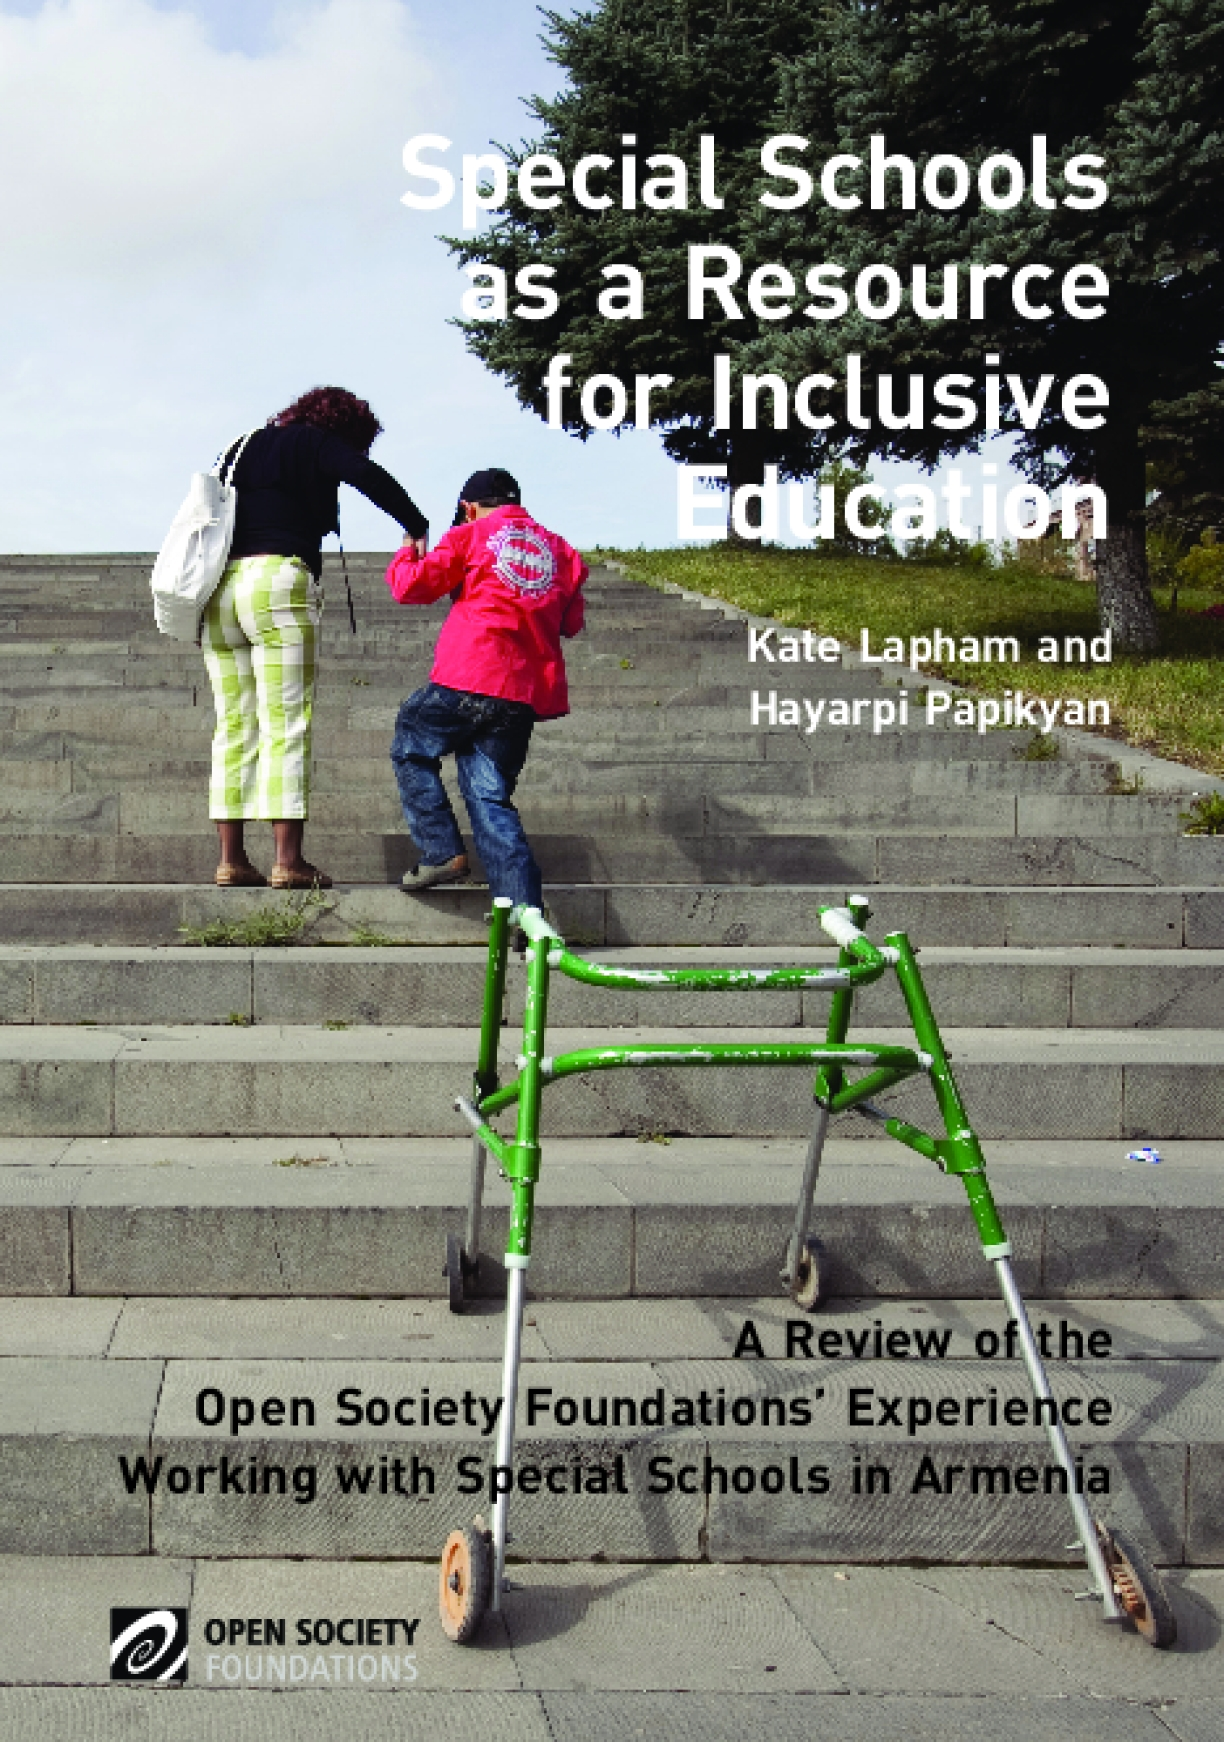 Special Schools as a Resource for Inclusive Education